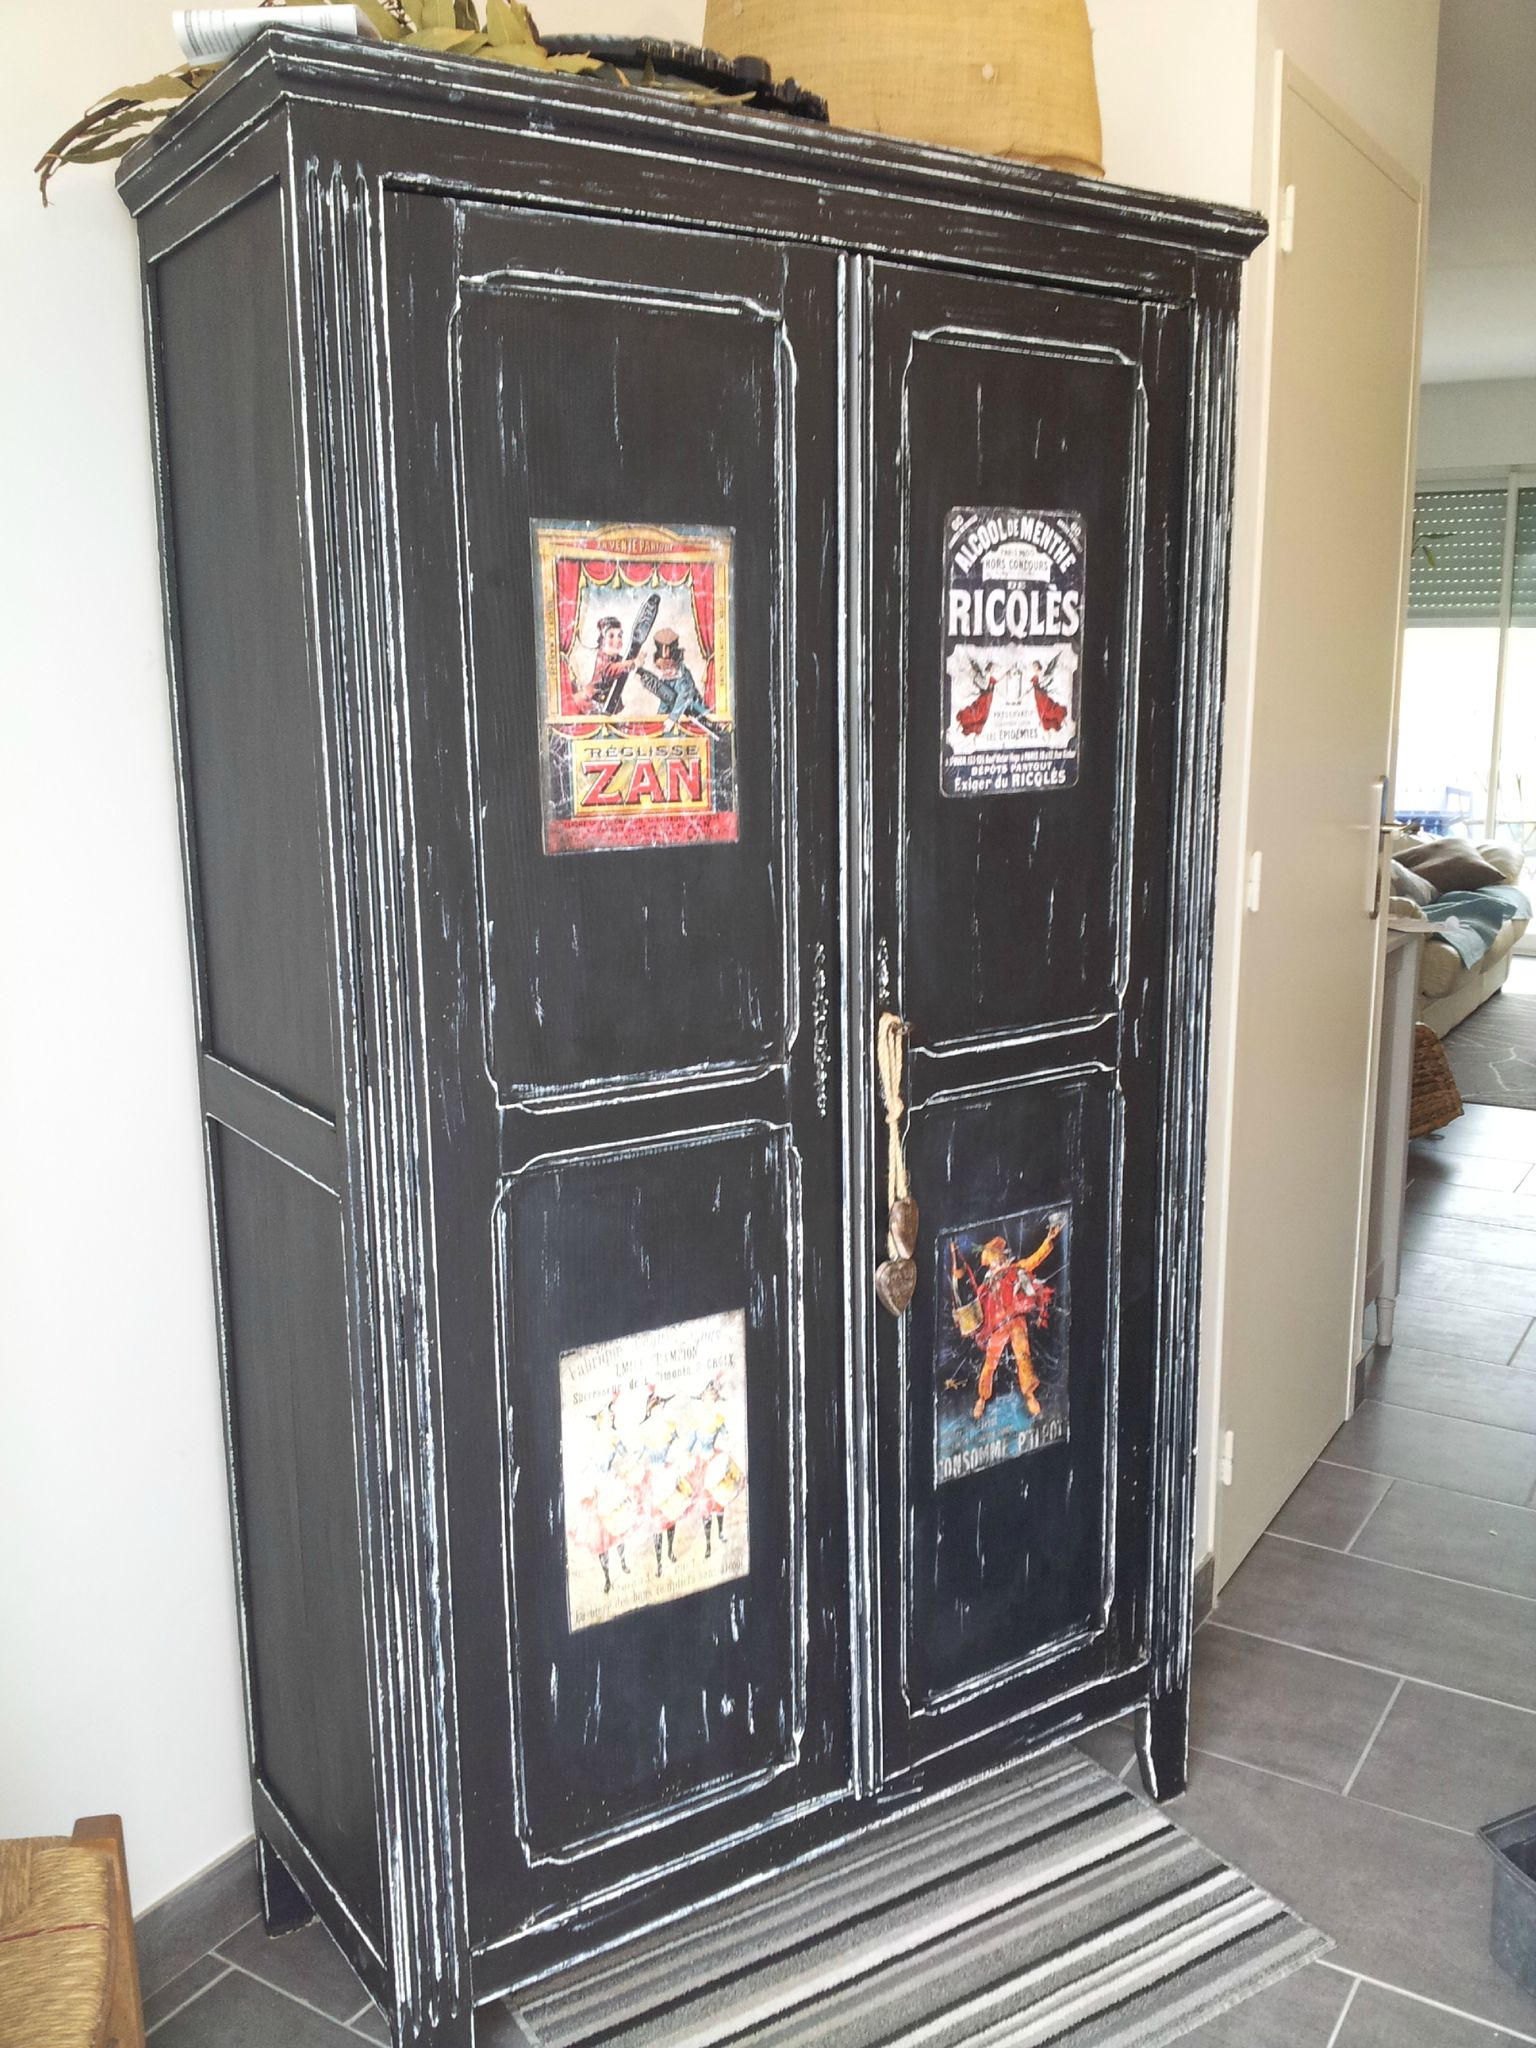 relooking d 39 une armoire dans un style vintage par nathalie bazz 39 art cr ation. Black Bedroom Furniture Sets. Home Design Ideas